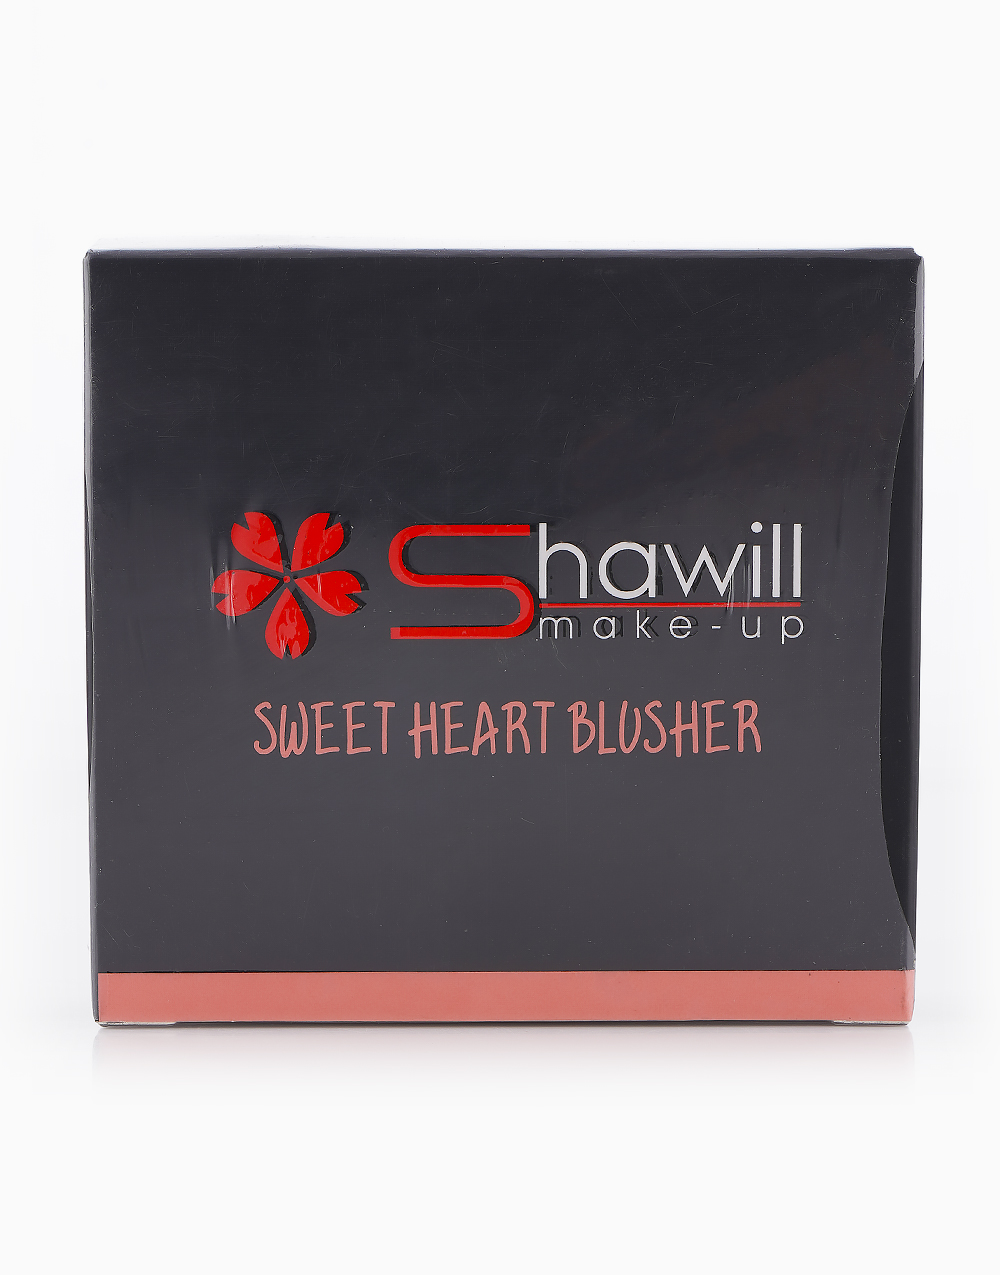 Sweet Heart Blusher by Shawill Cosmetics | #2